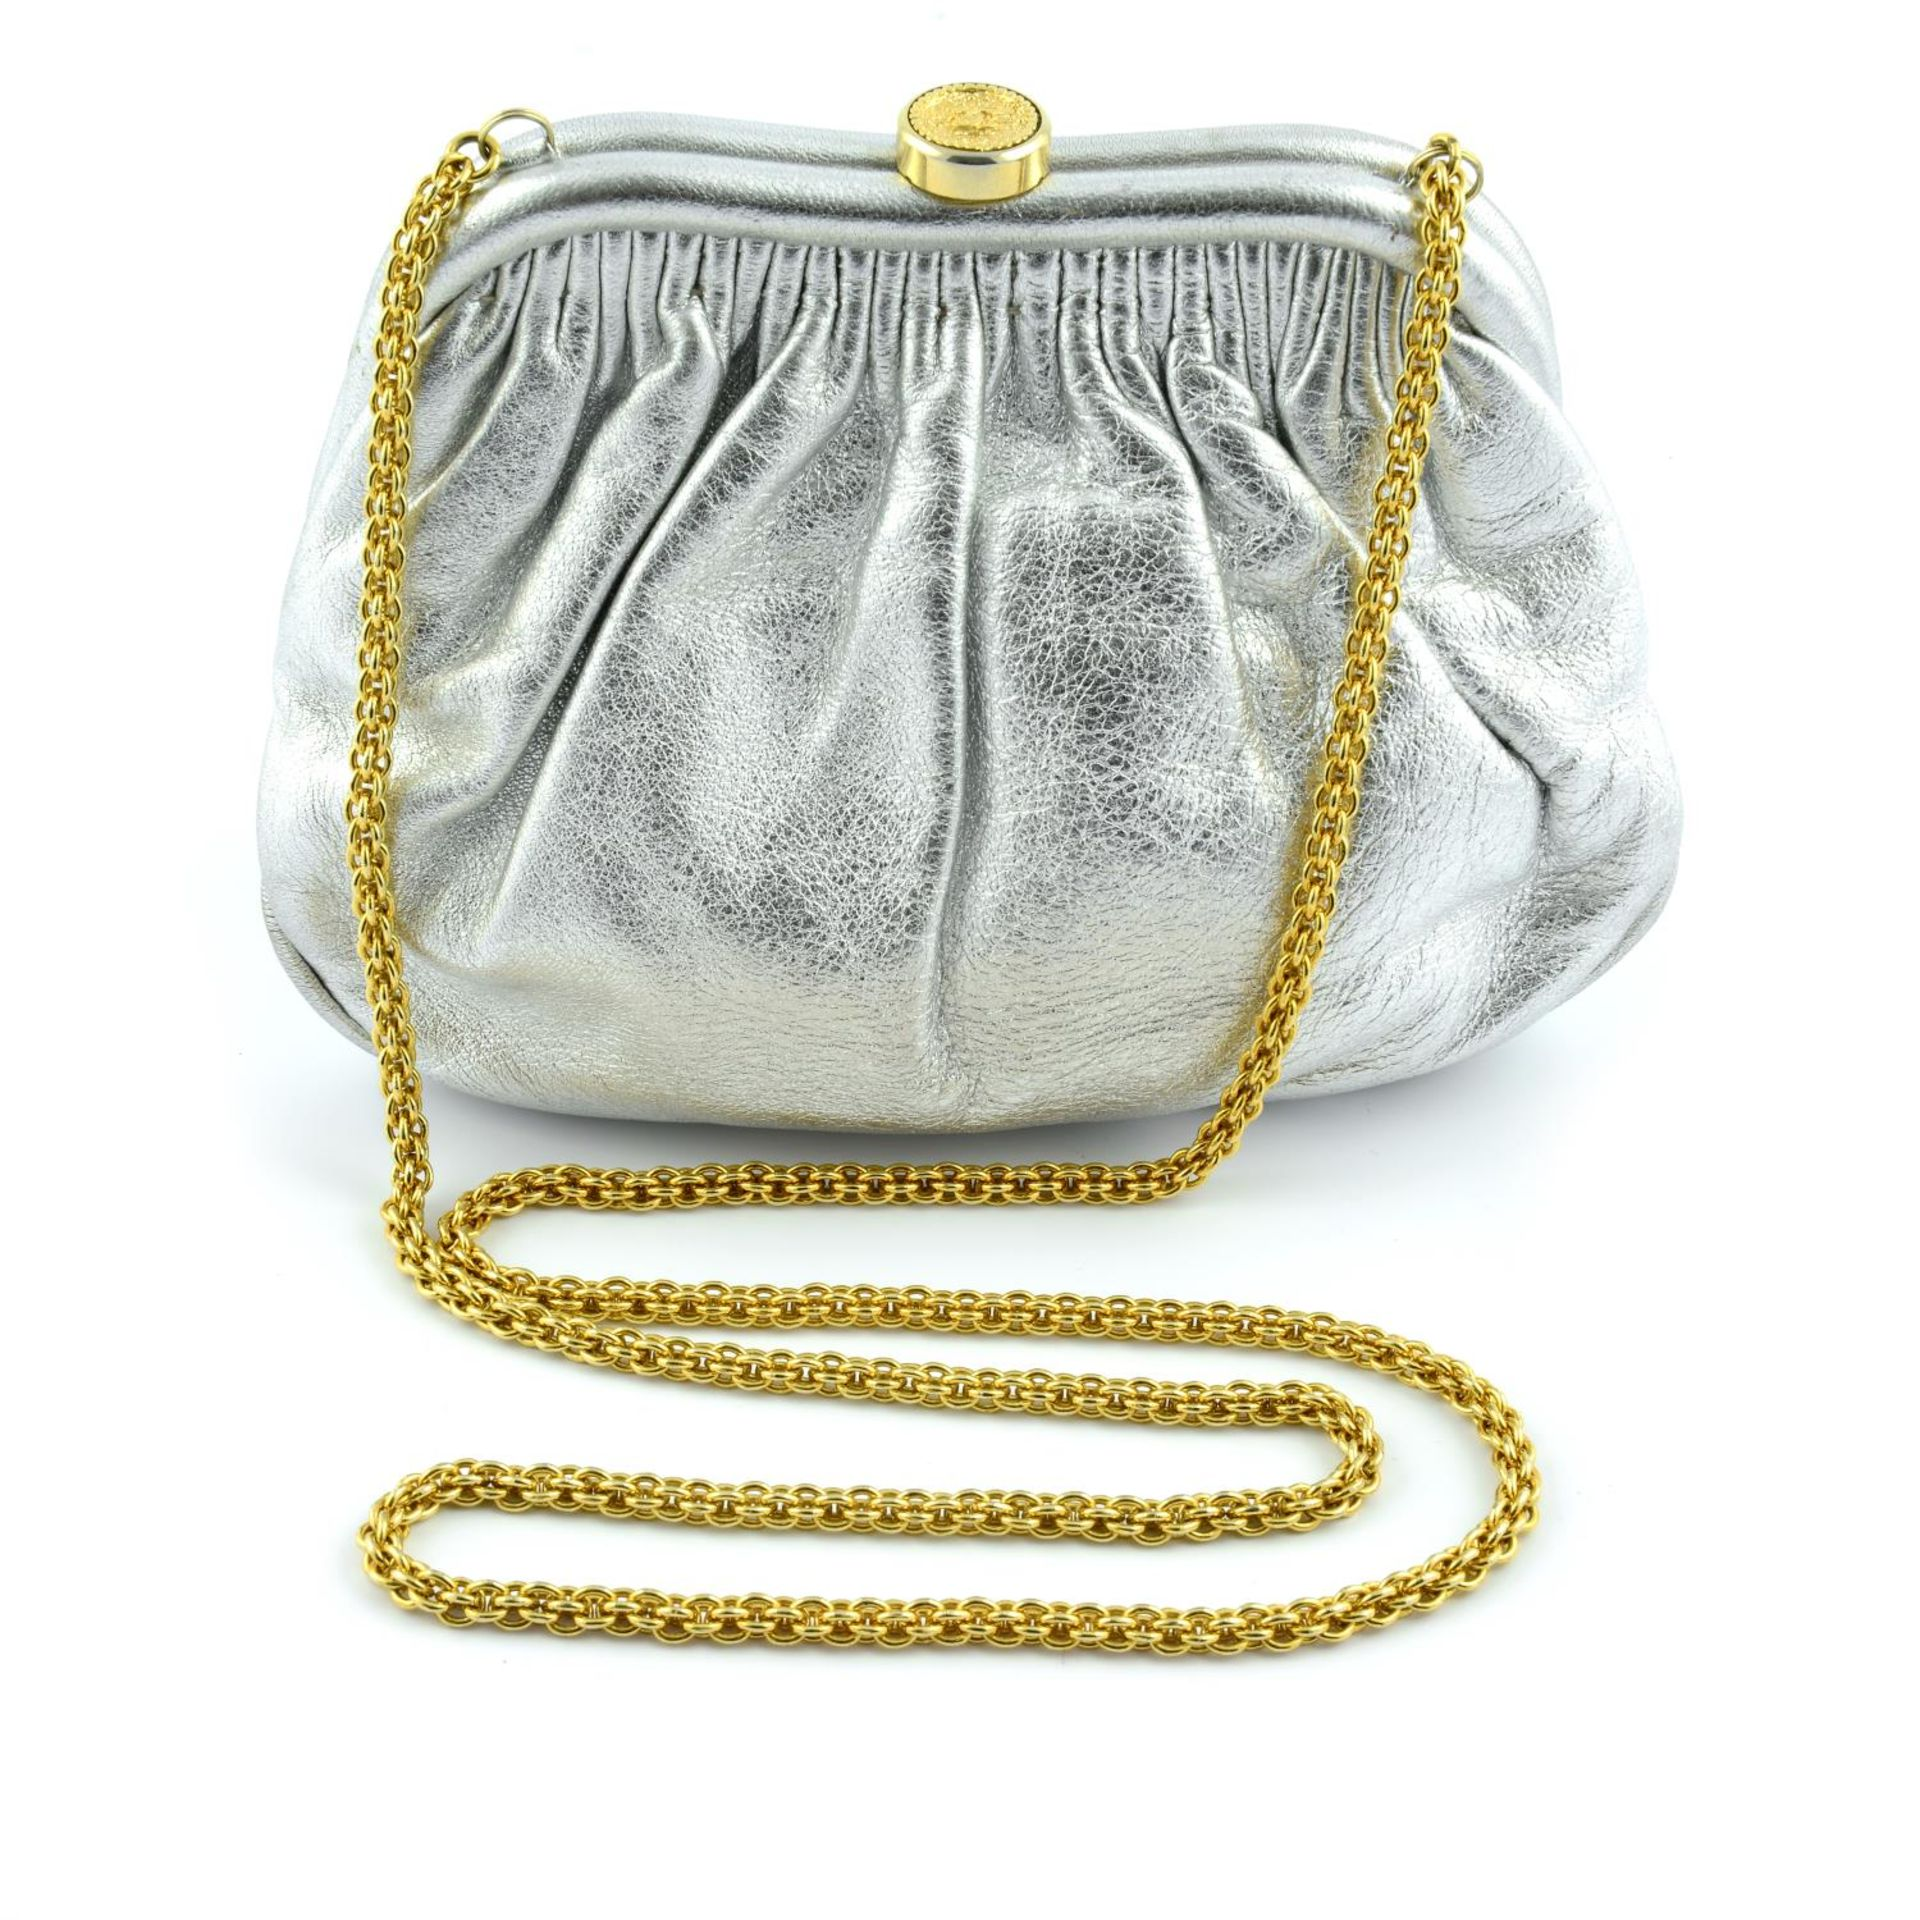 CHANEL - a vintage metallic kiss-lock clutch with chain. - Image 4 of 6